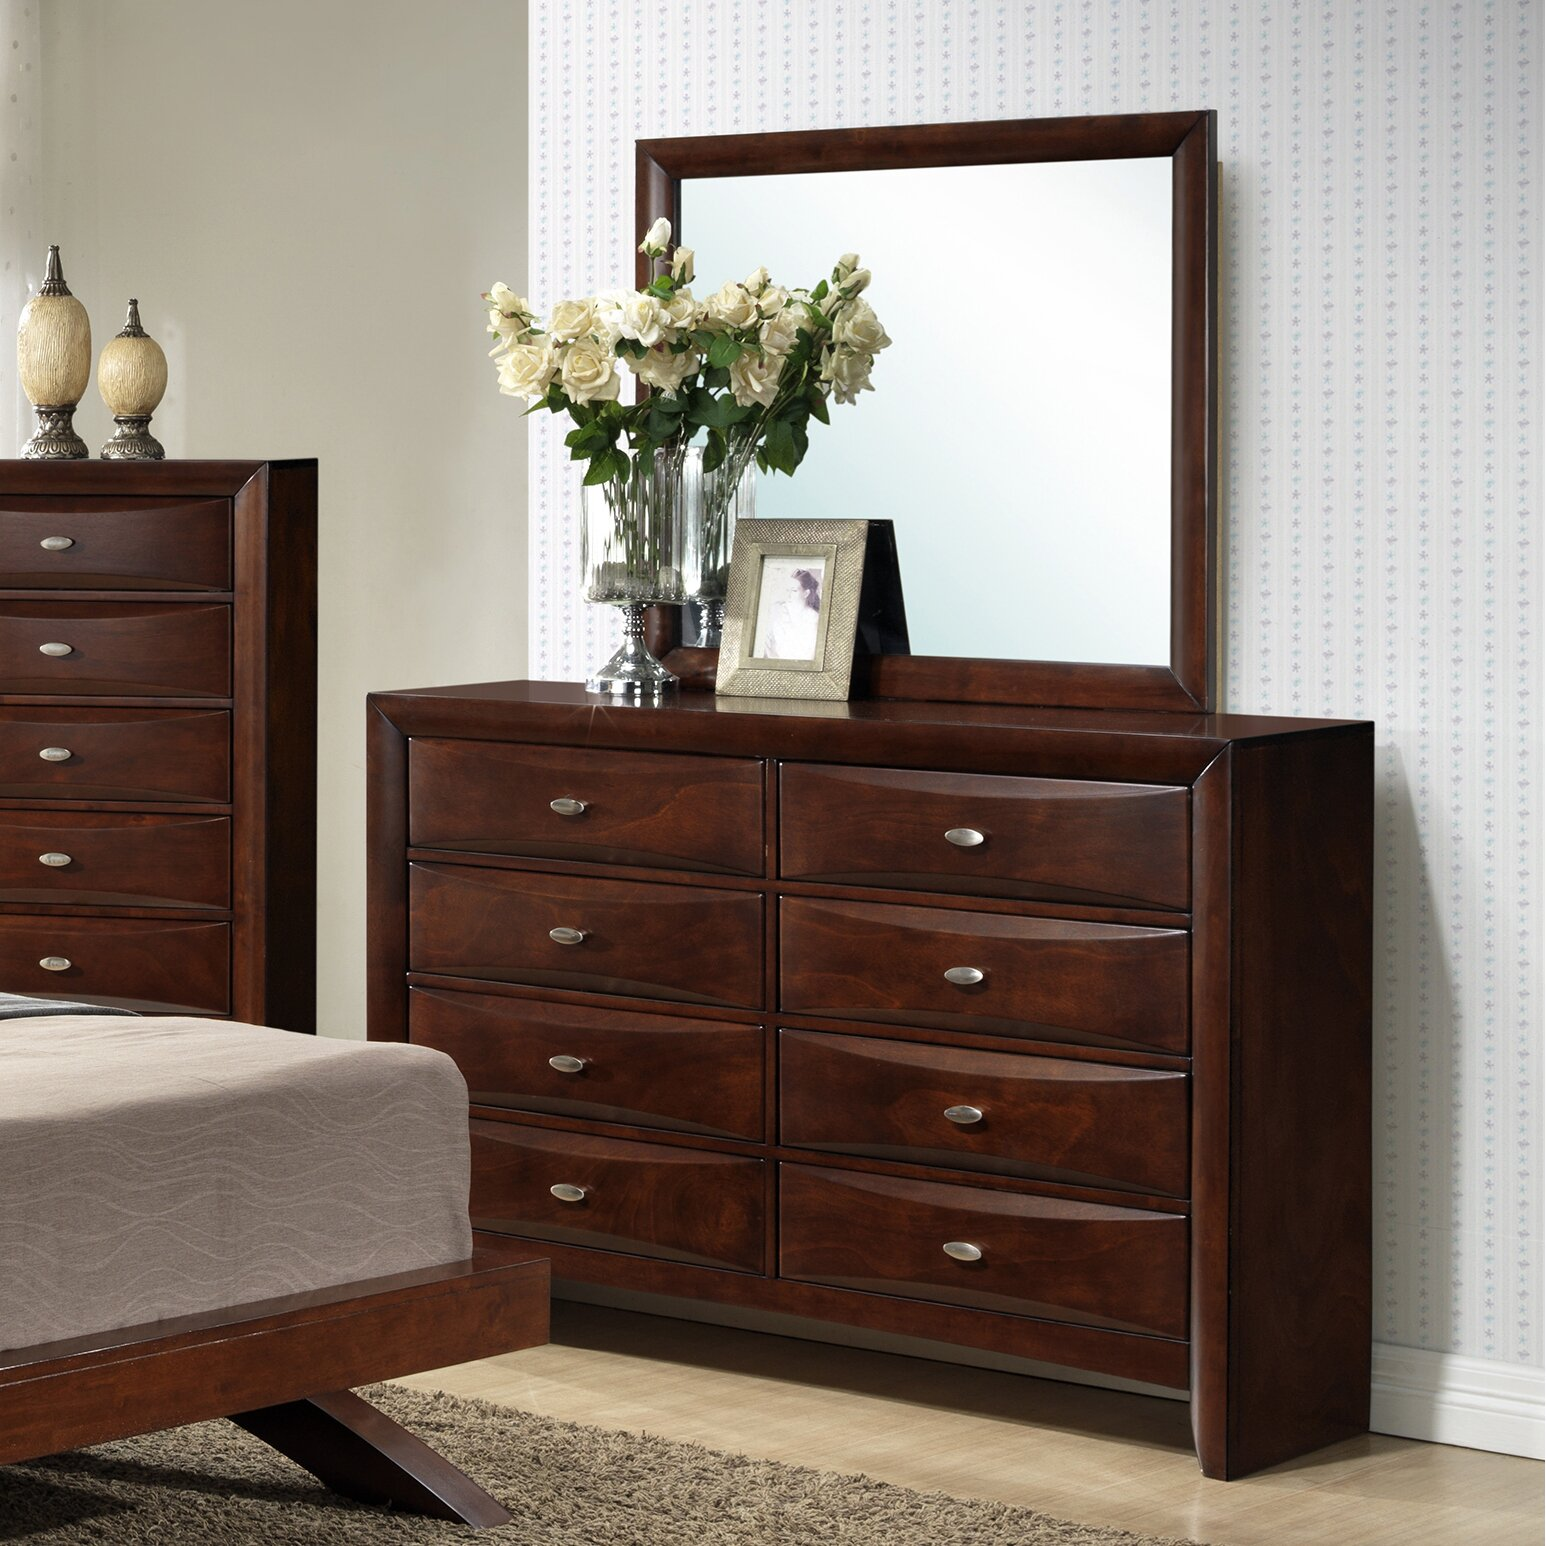 Roundhill Furniture Emily Panel 4 Piece Bedroom Set